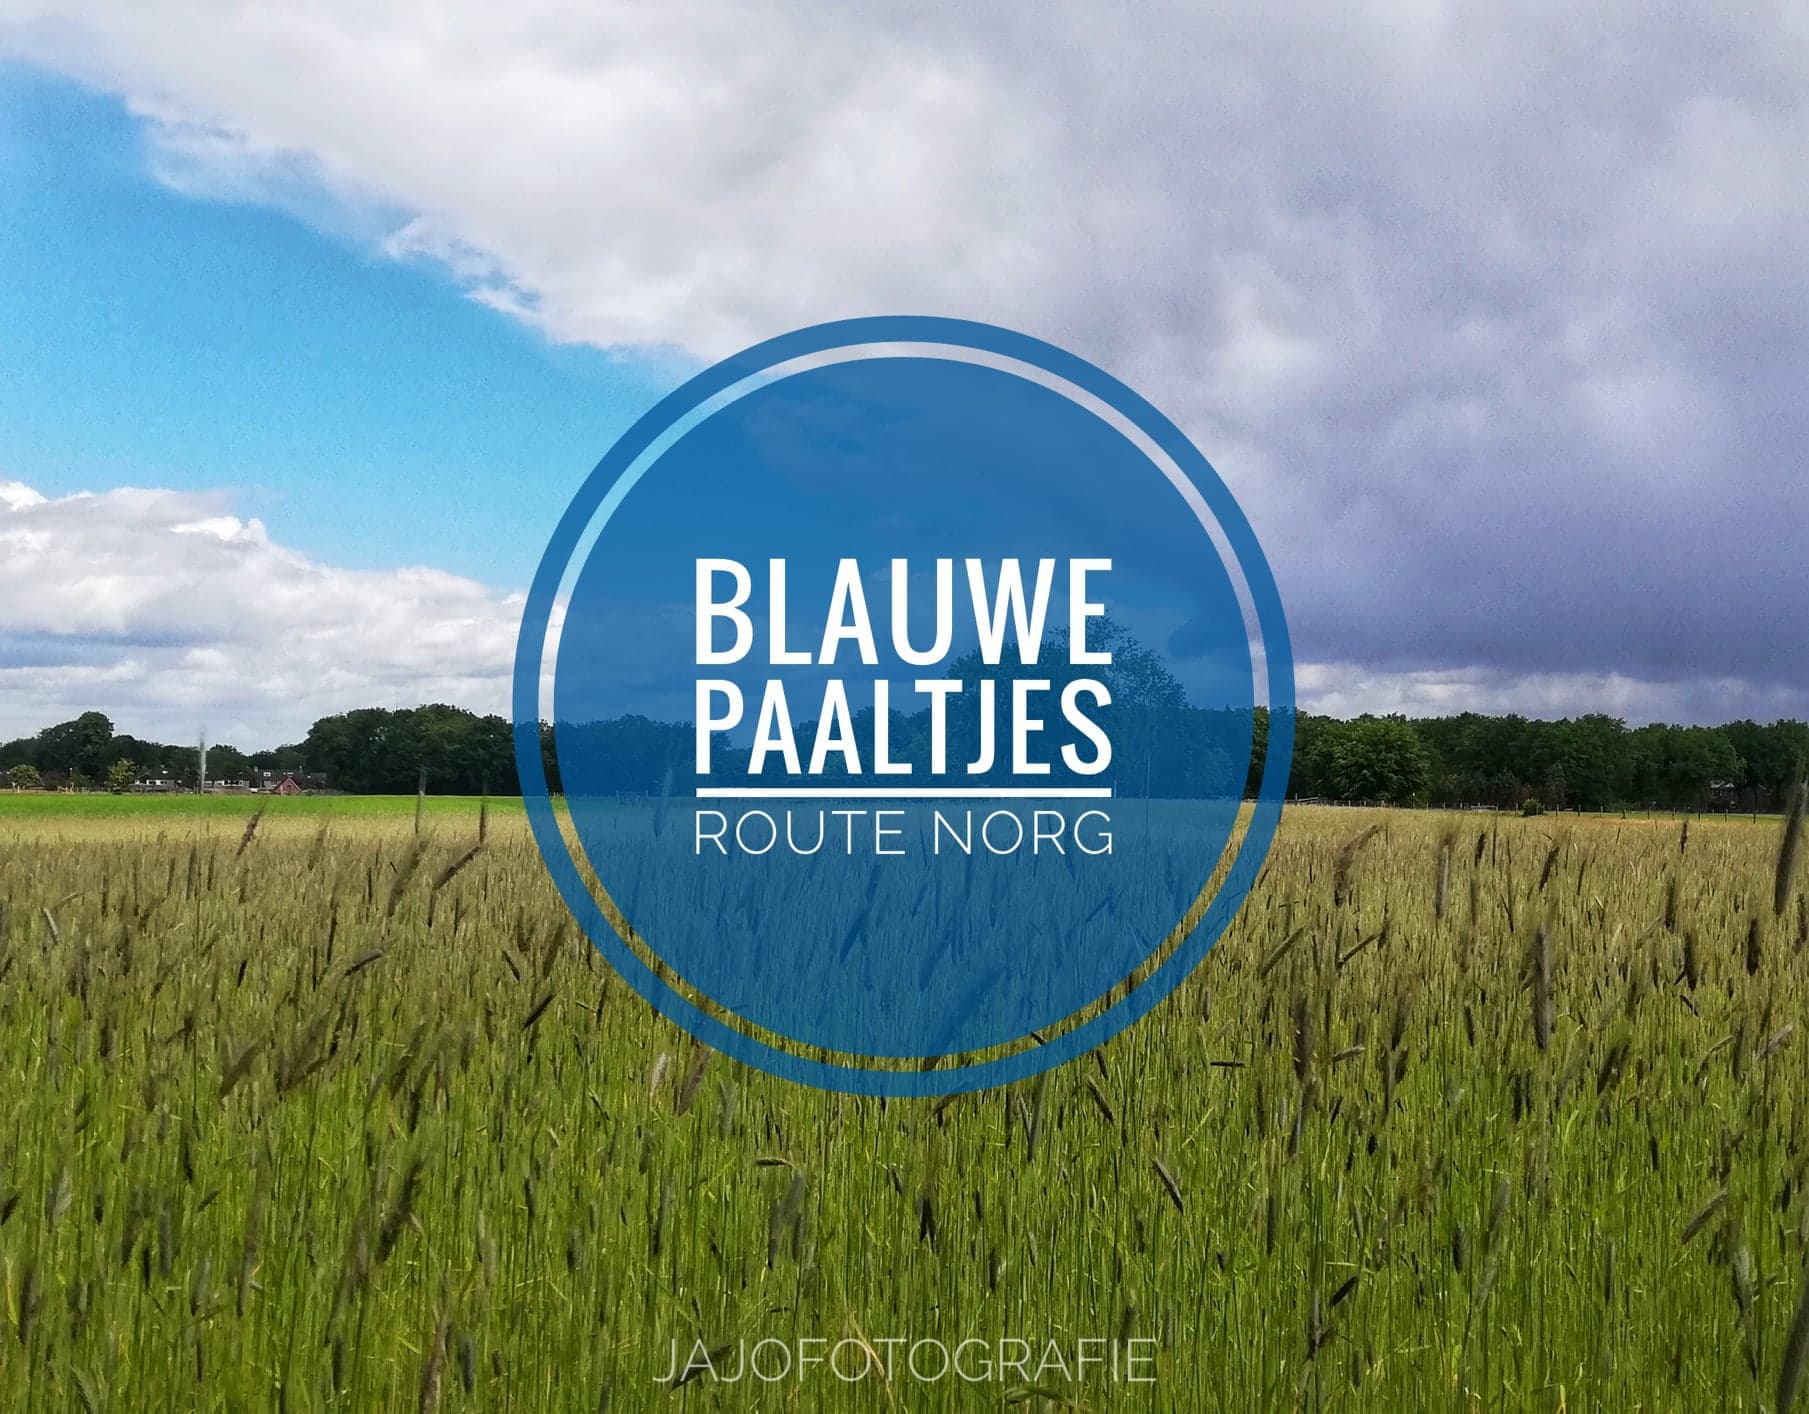 Norg – blauwe paaltjes route